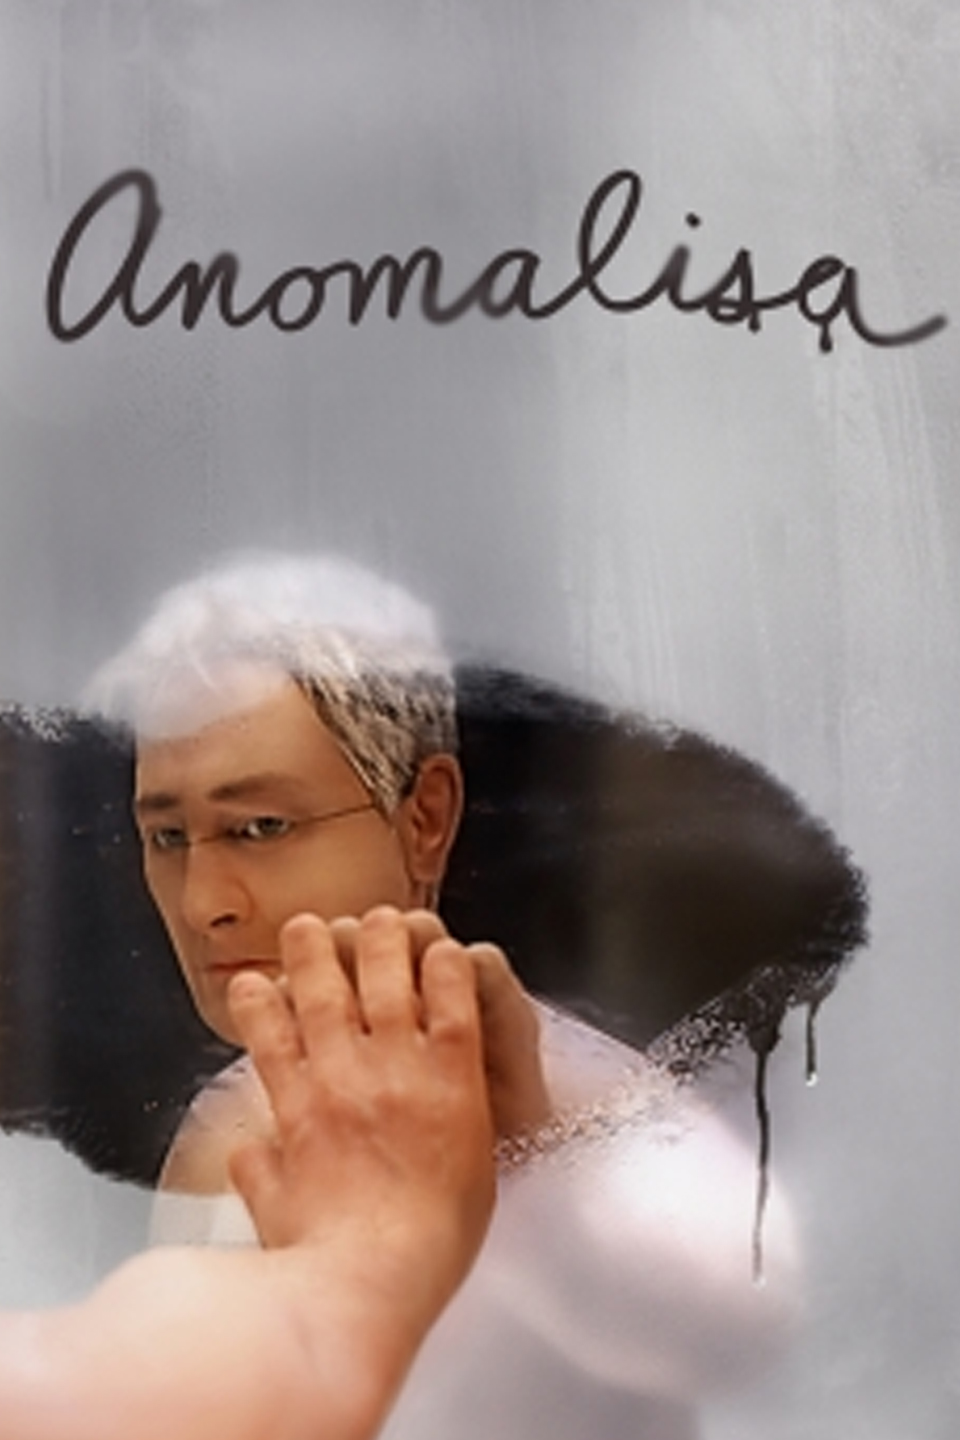 Anomalisa-960x1440-Portrate